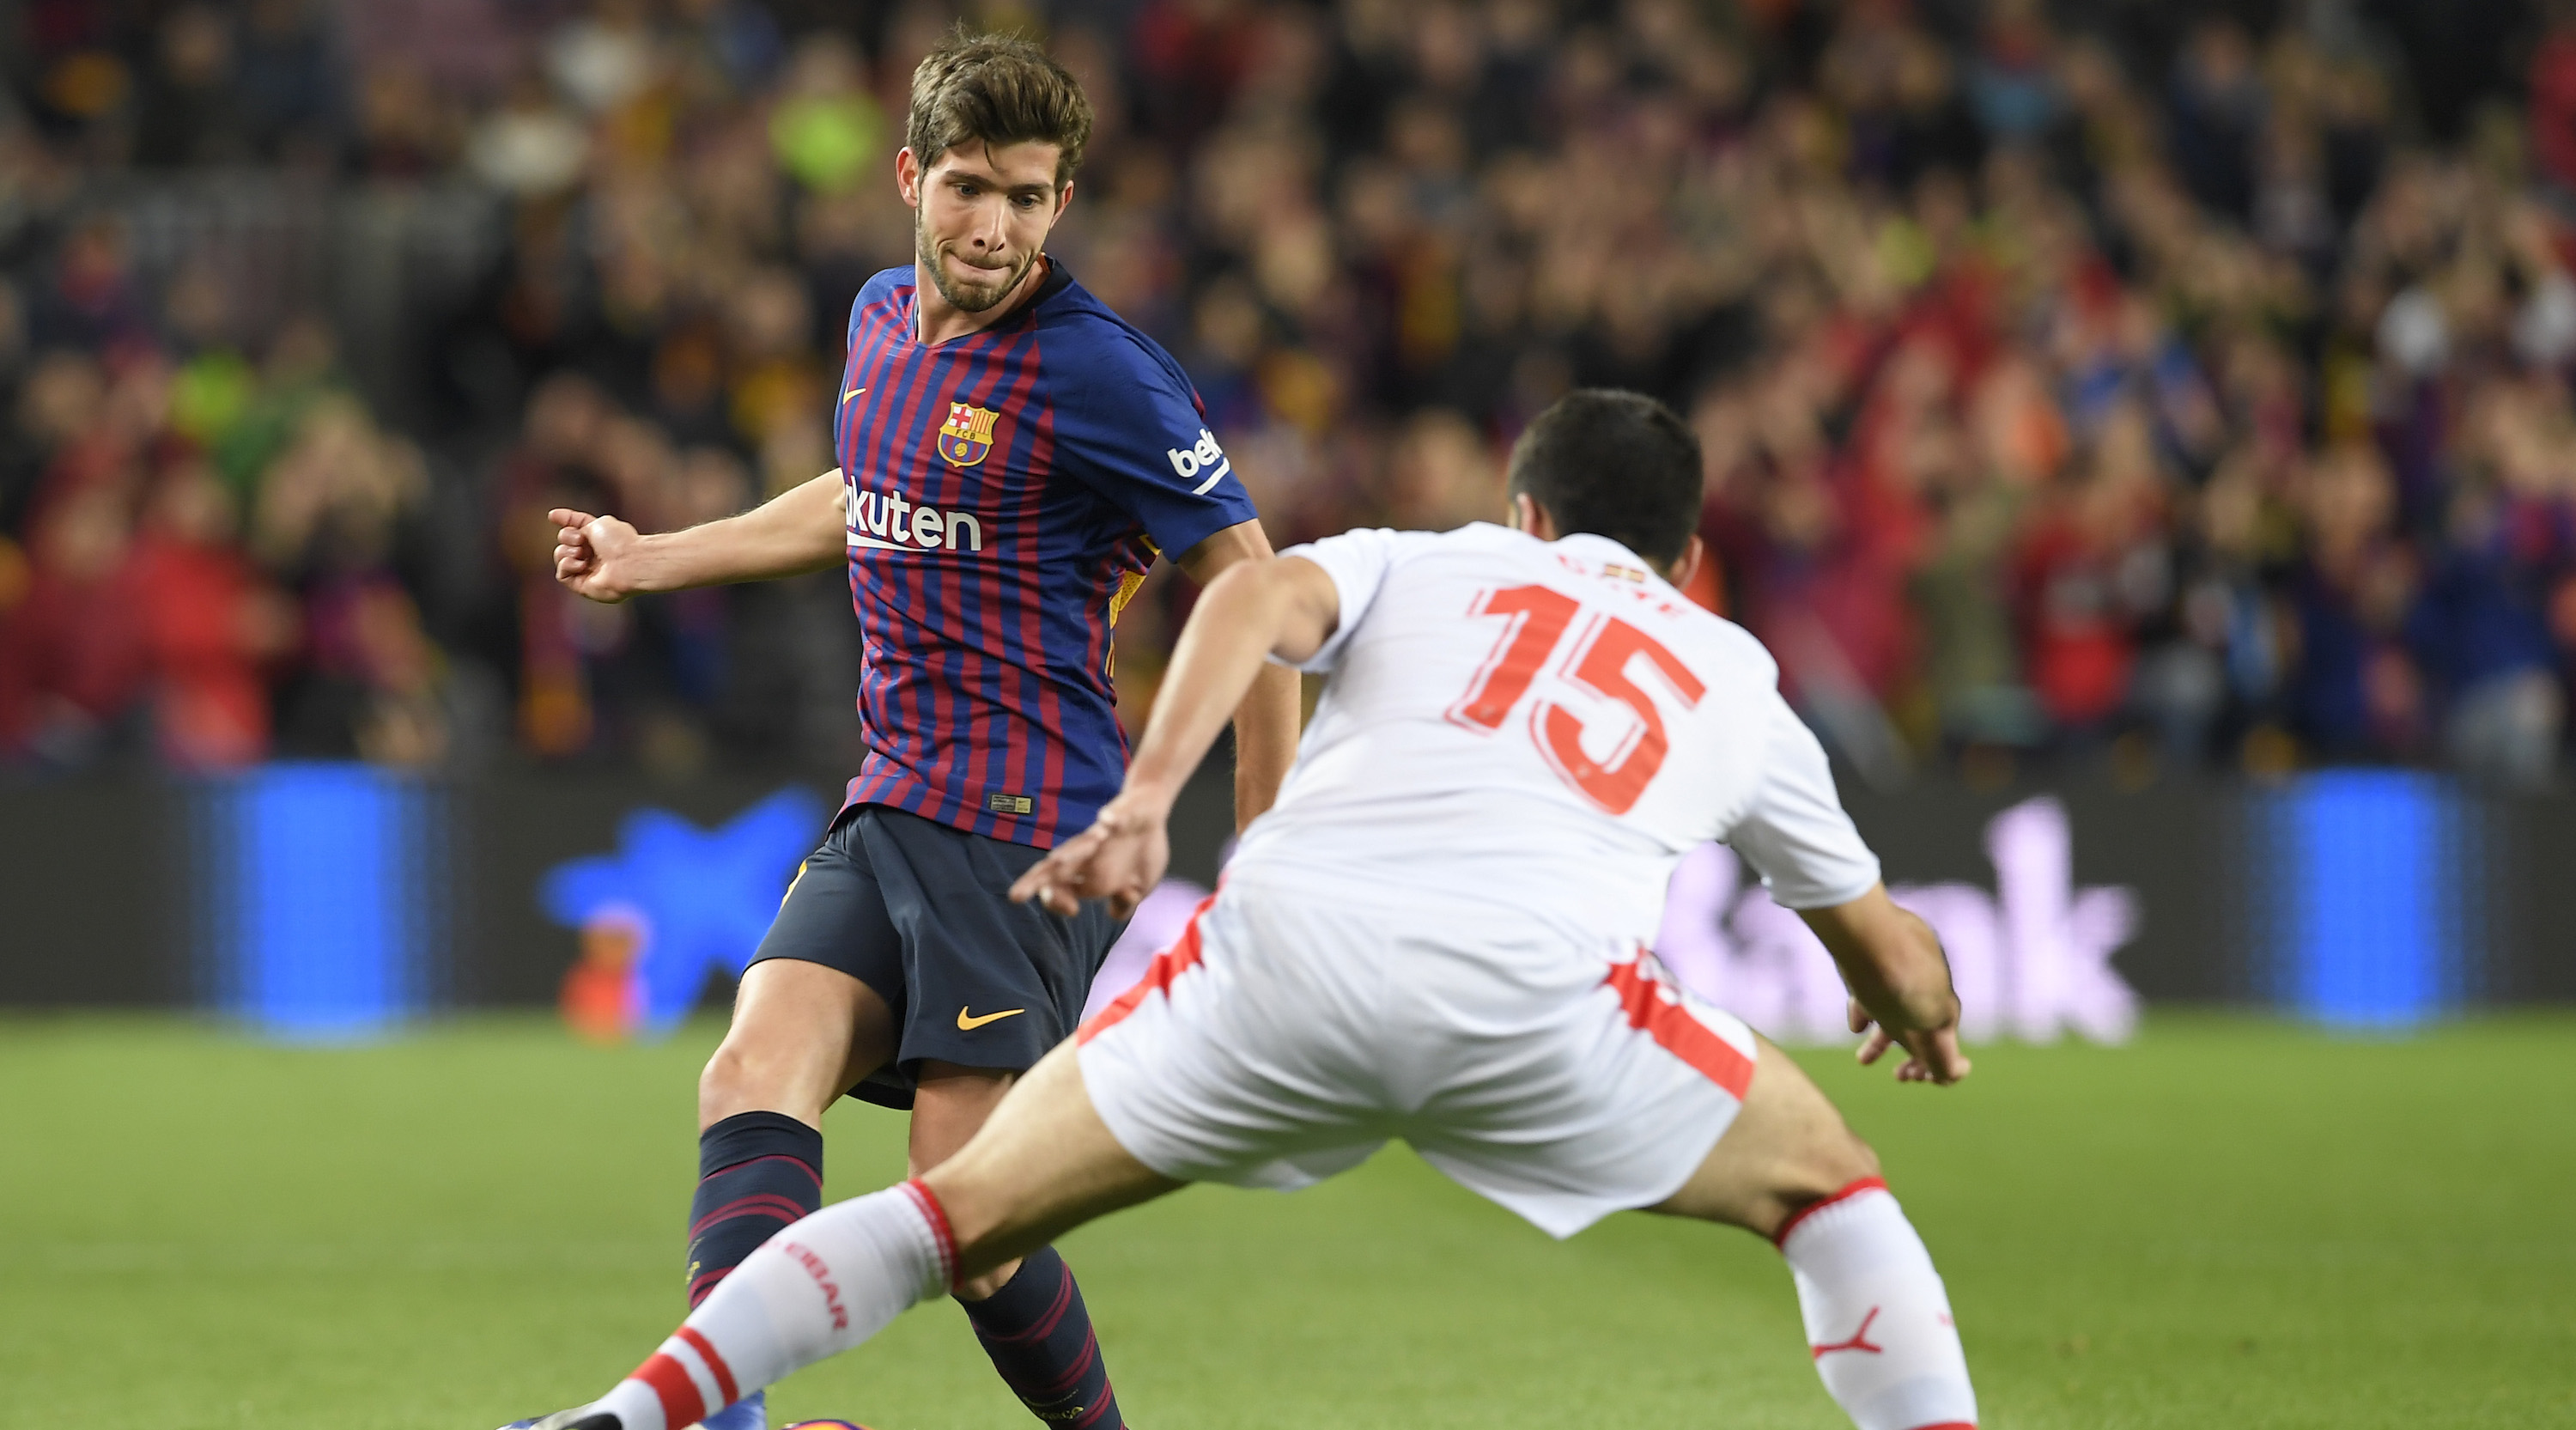 Barcelona's Spanish midfielder Sergi Roberto (L) vies with Eibar's Spanish defender Jose Angel during the Spanish League football match between FC Barcelona and SD Eibar at the Camp Nou stadium in Barcelona on January 13, 2019. (Photo by LLUIS GENE / AFP) (Photo credit should read LLUIS GENE/AFP/Getty Images)